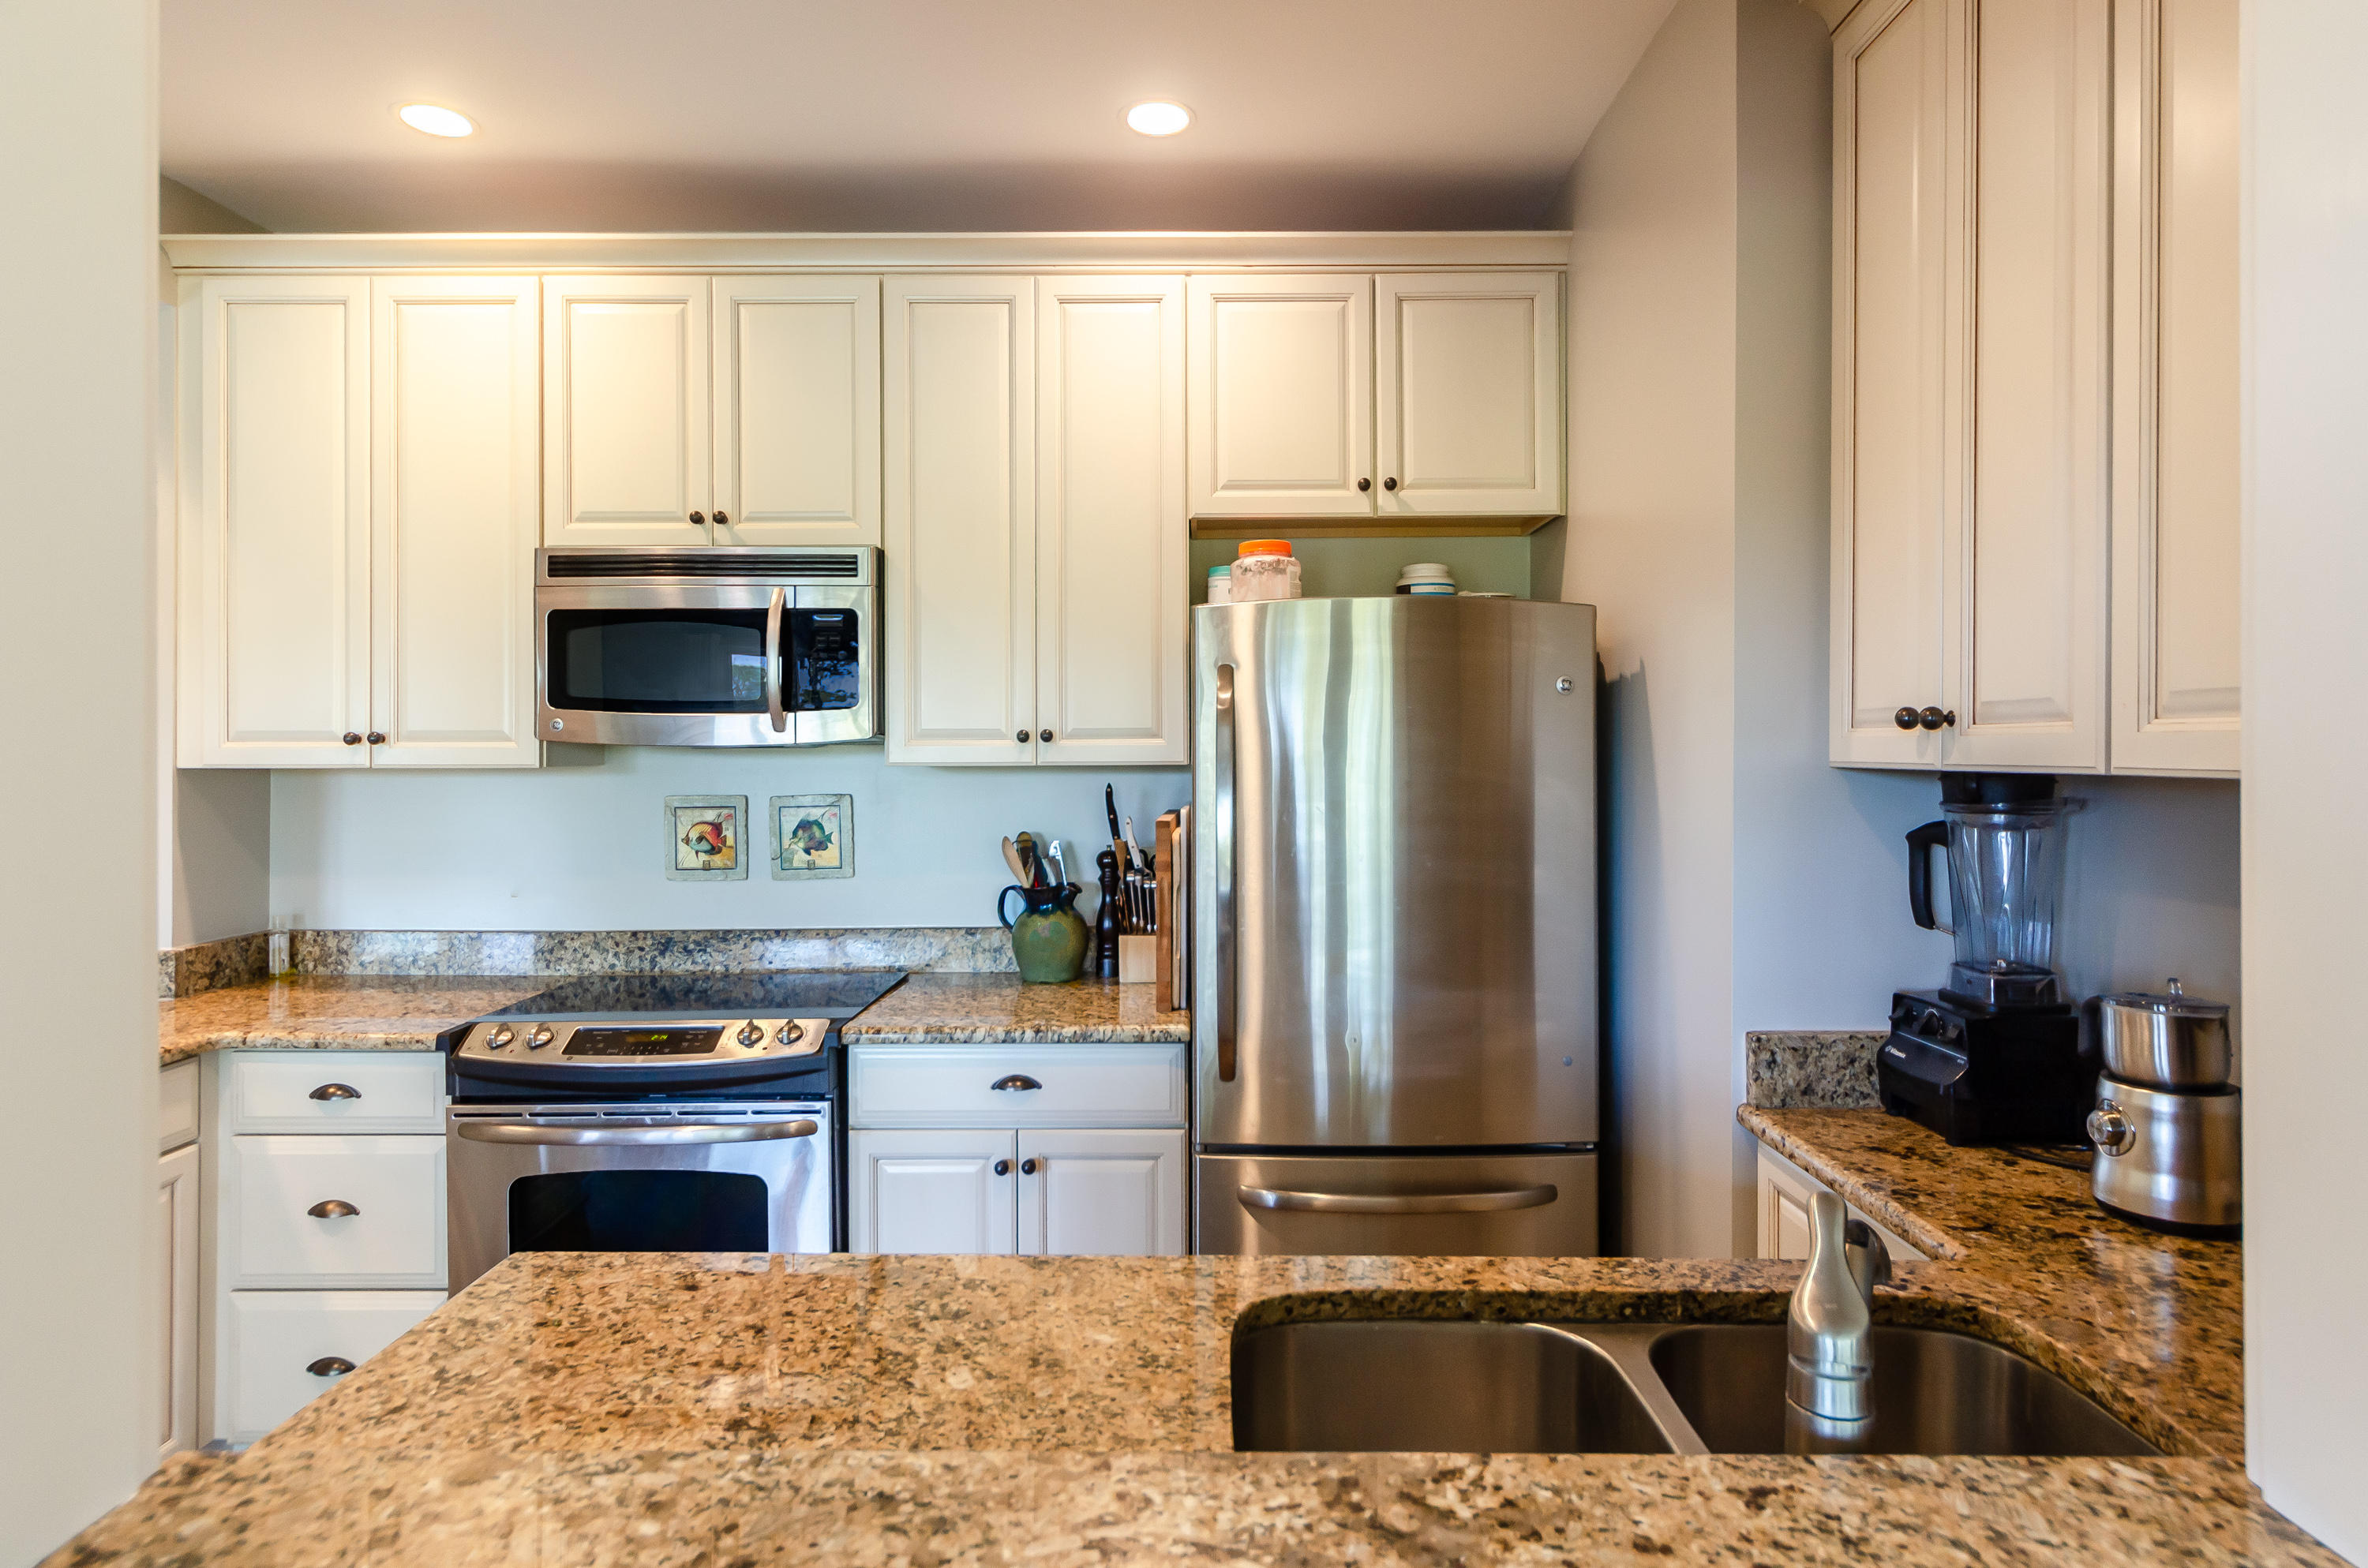 Turtle Point Homes For Sale - 5008 Green Dolphin, Kiawah Island, SC - 4